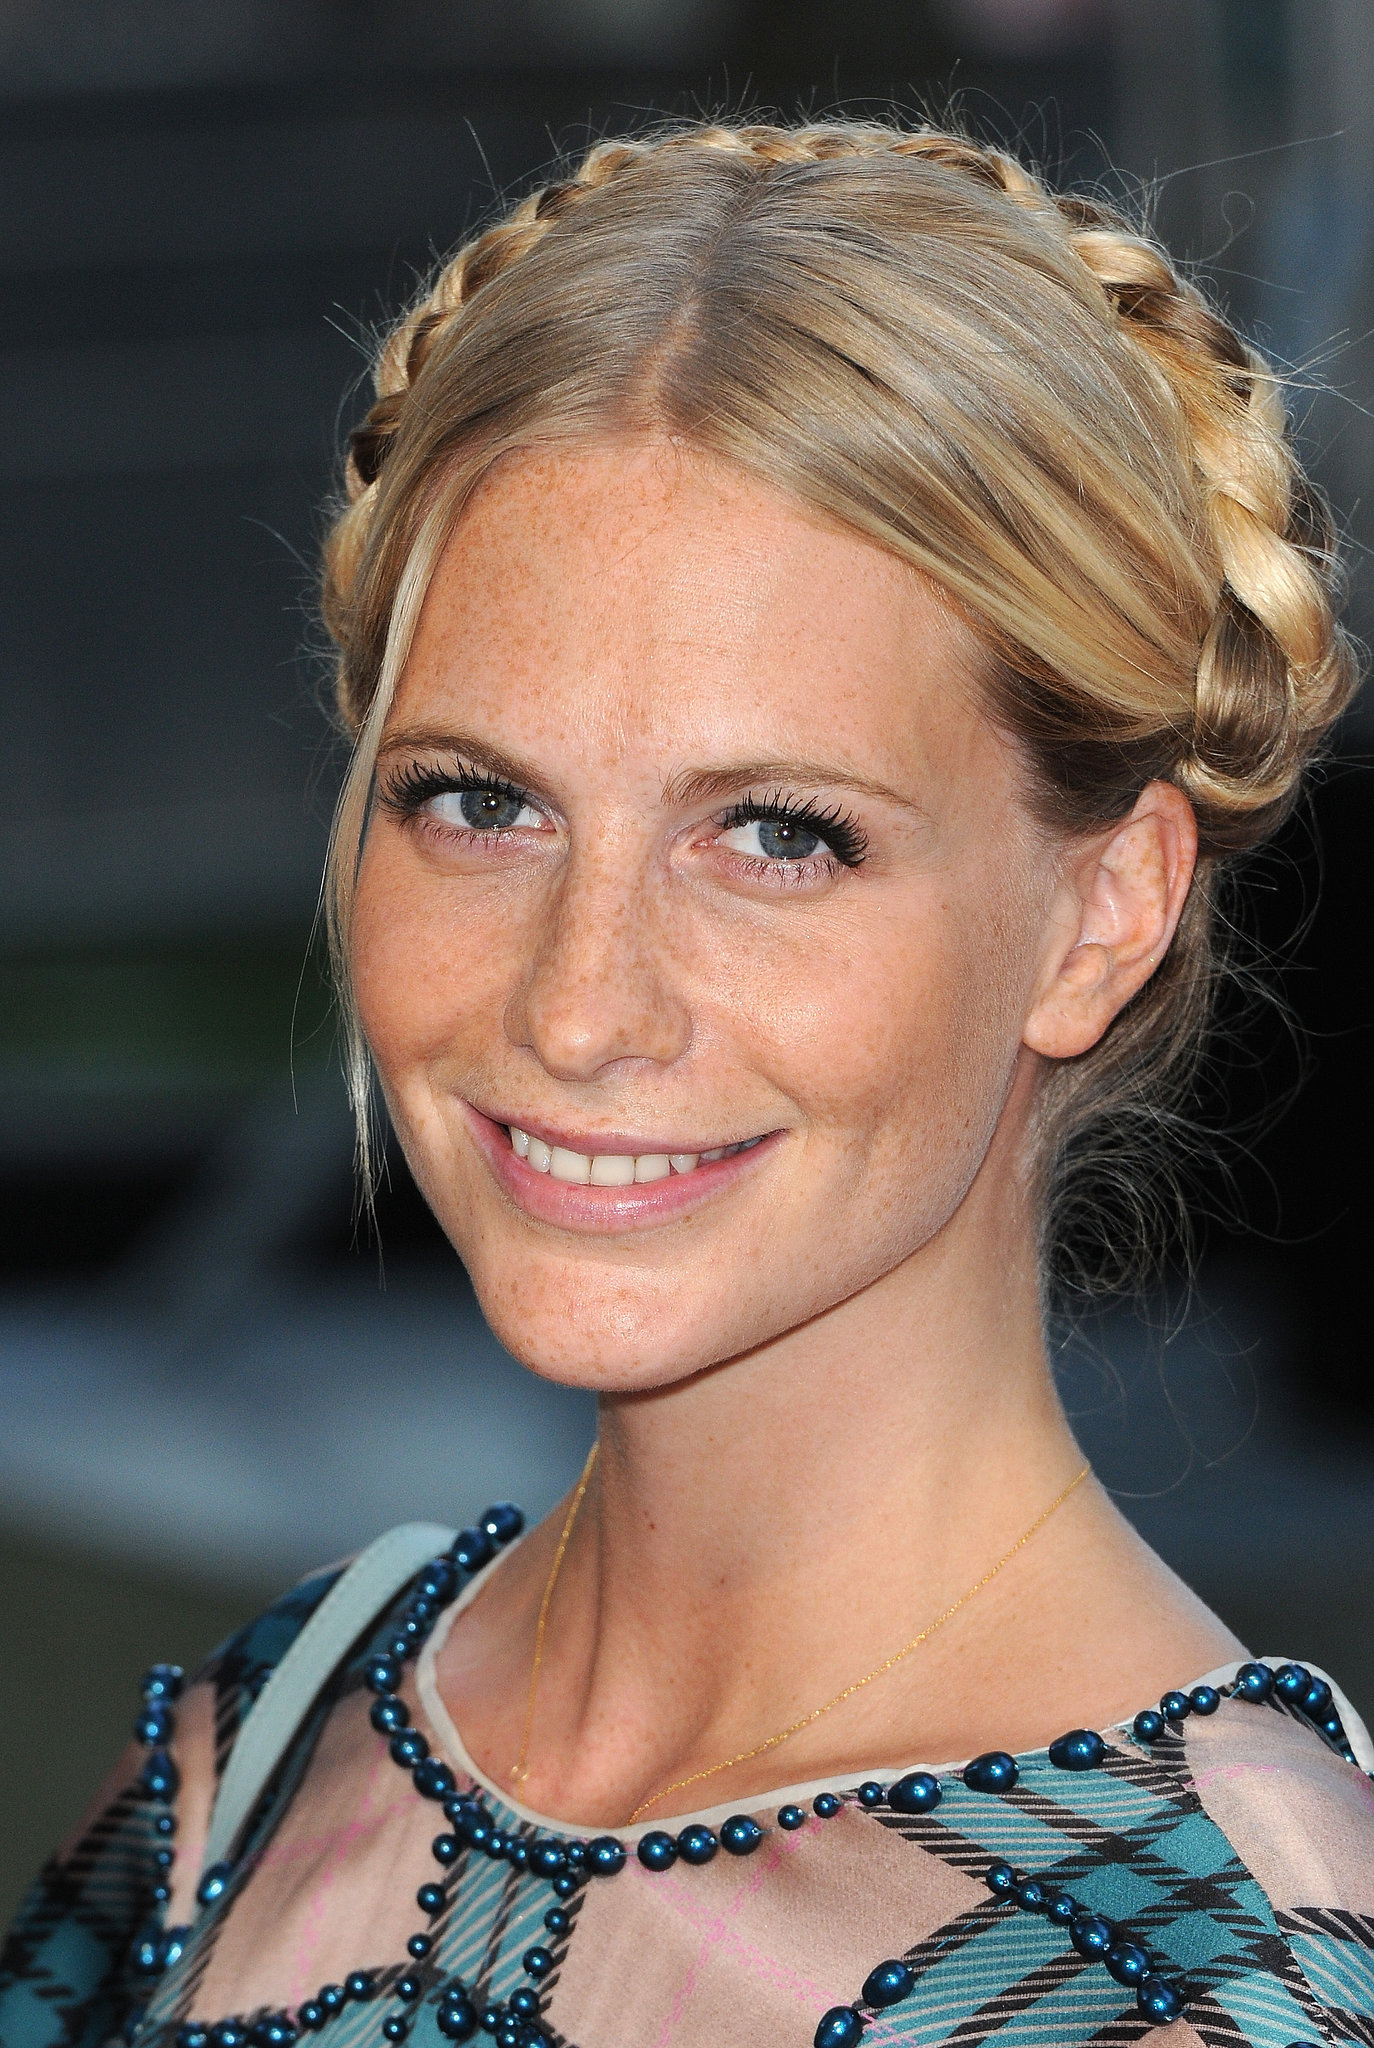 Poppy Delevingne opted to keep her milkmaid braids smooth and sleek.